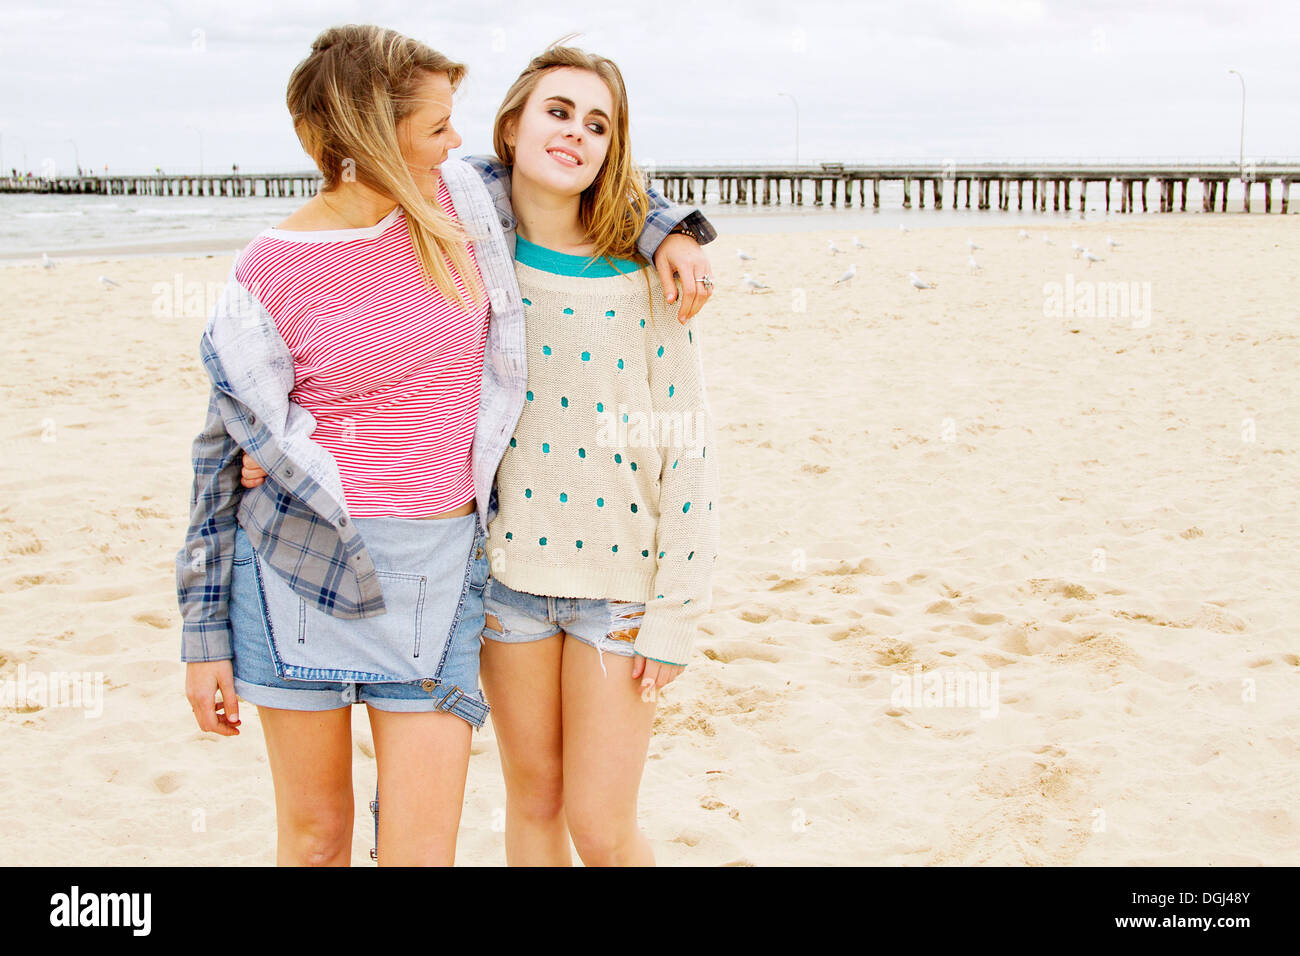 Girlfriends standing on beach with arm around - Stock Image